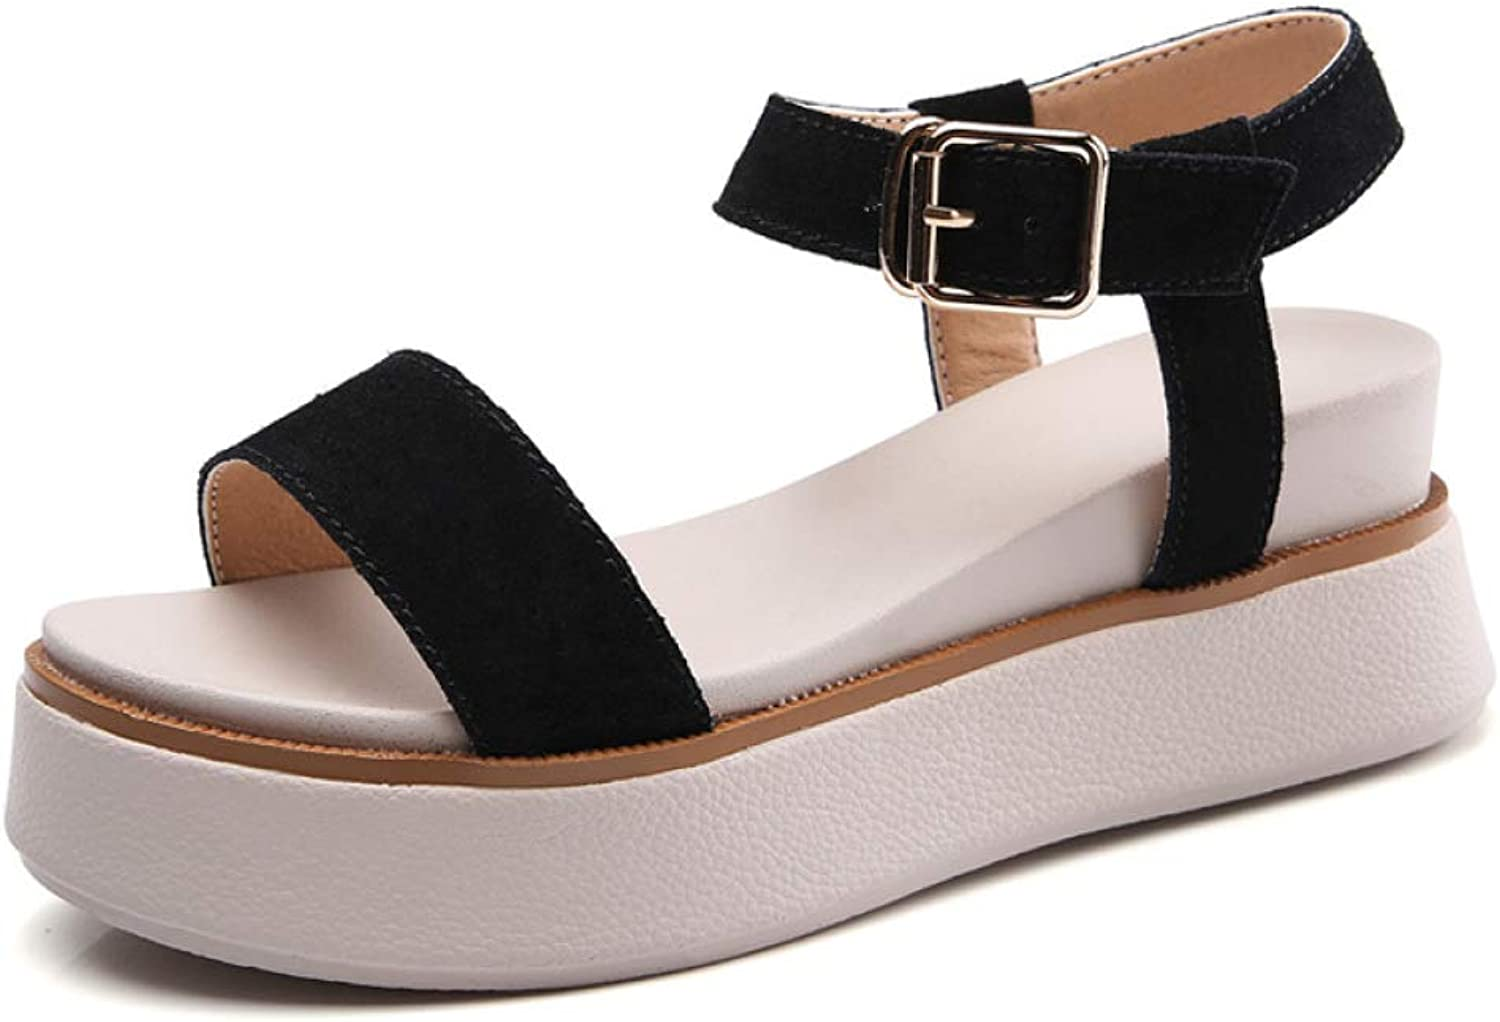 MEIZOKEN Womens Open Toe Wedge Platform Comfort Suede Casual shoes Ankle Strap Non-Slip Slide Sandals